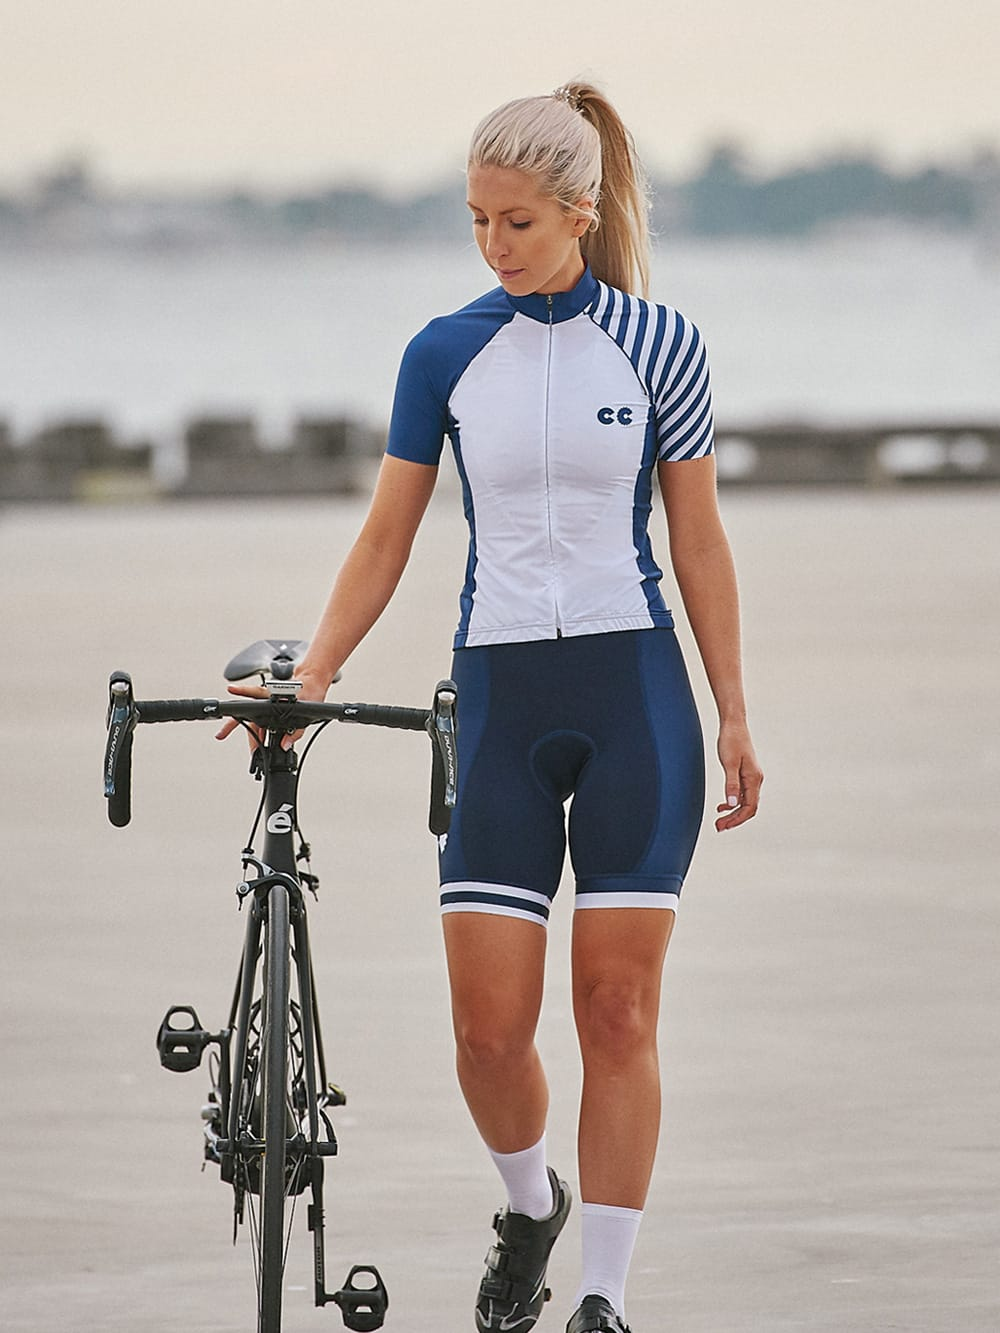 Breton Stripes Womens Cycling Kit- Cycling Couture